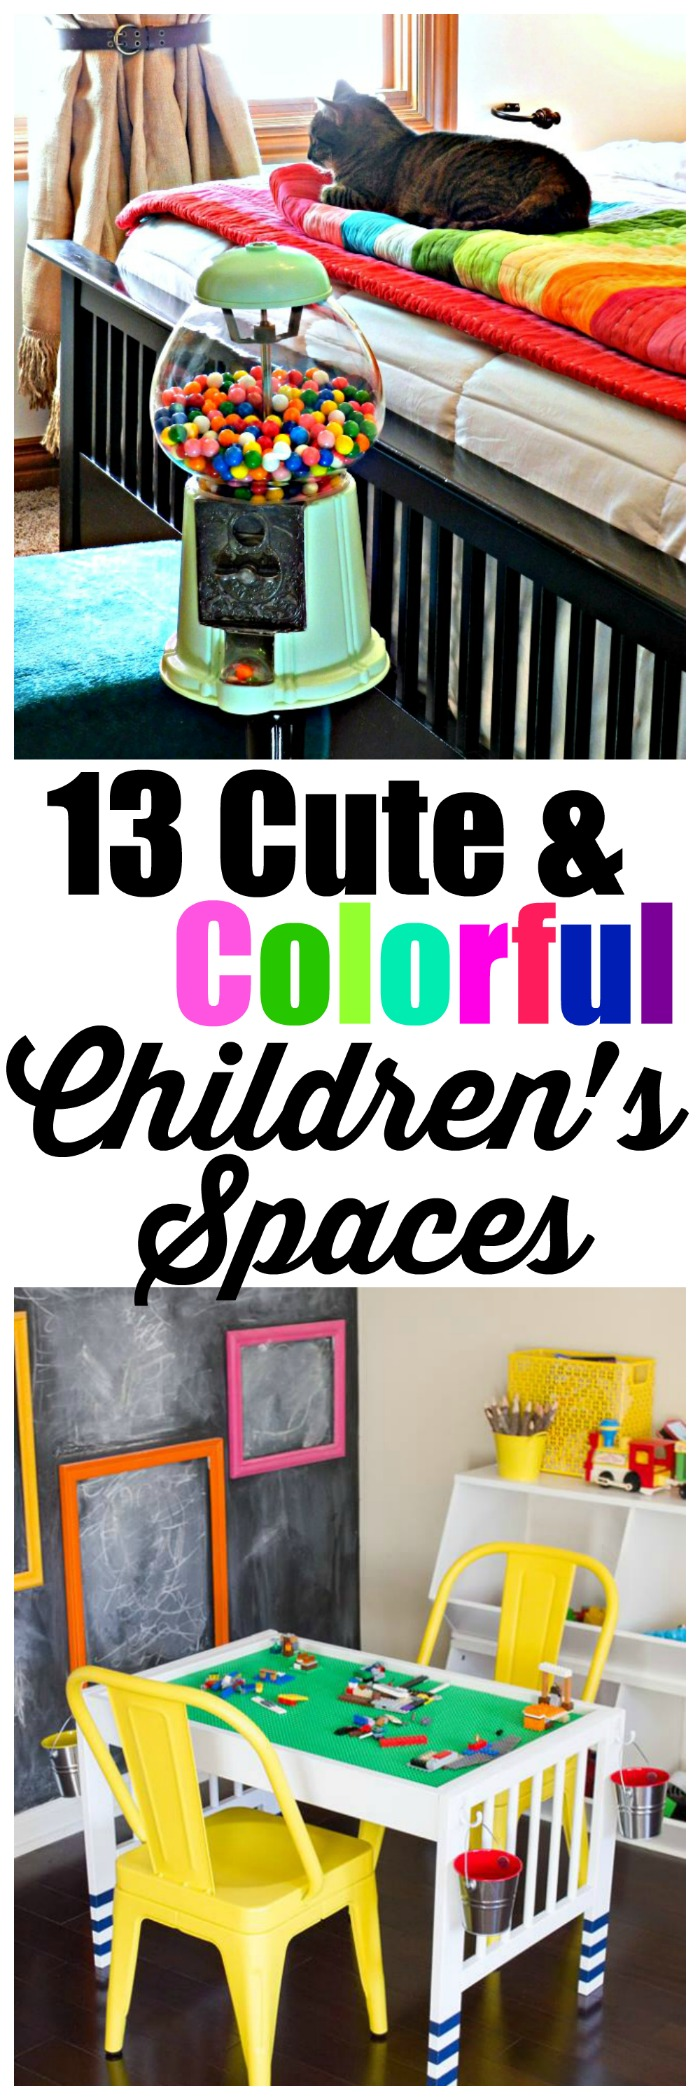 There are such cute colorful children's spaces in this article, I had to pin for later!